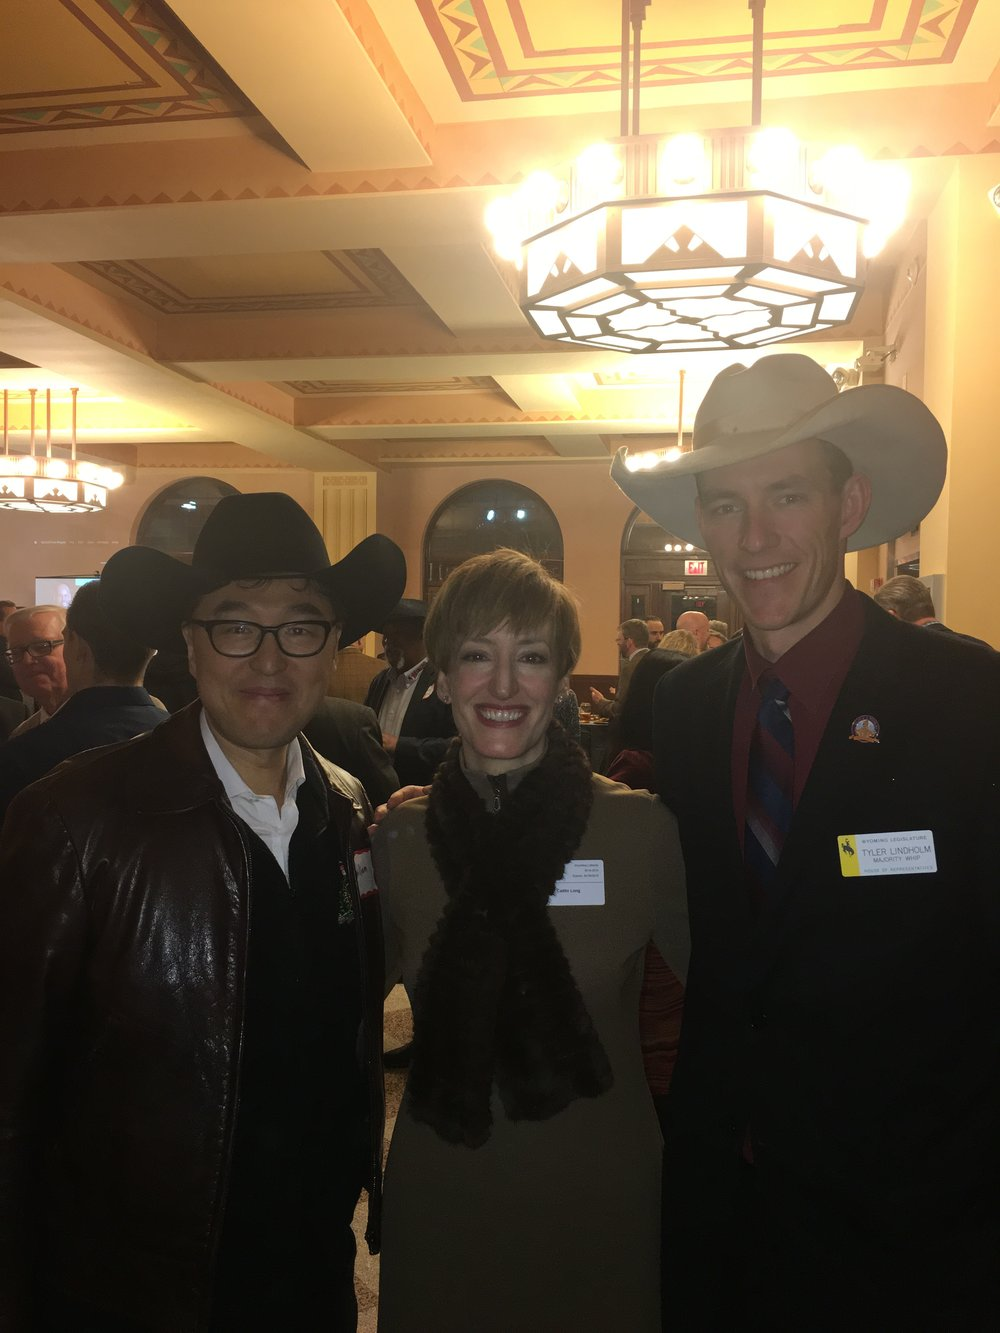 With my friends Caitlin Long & Representative Tyler Lindholm (supporters of the bills, now law).